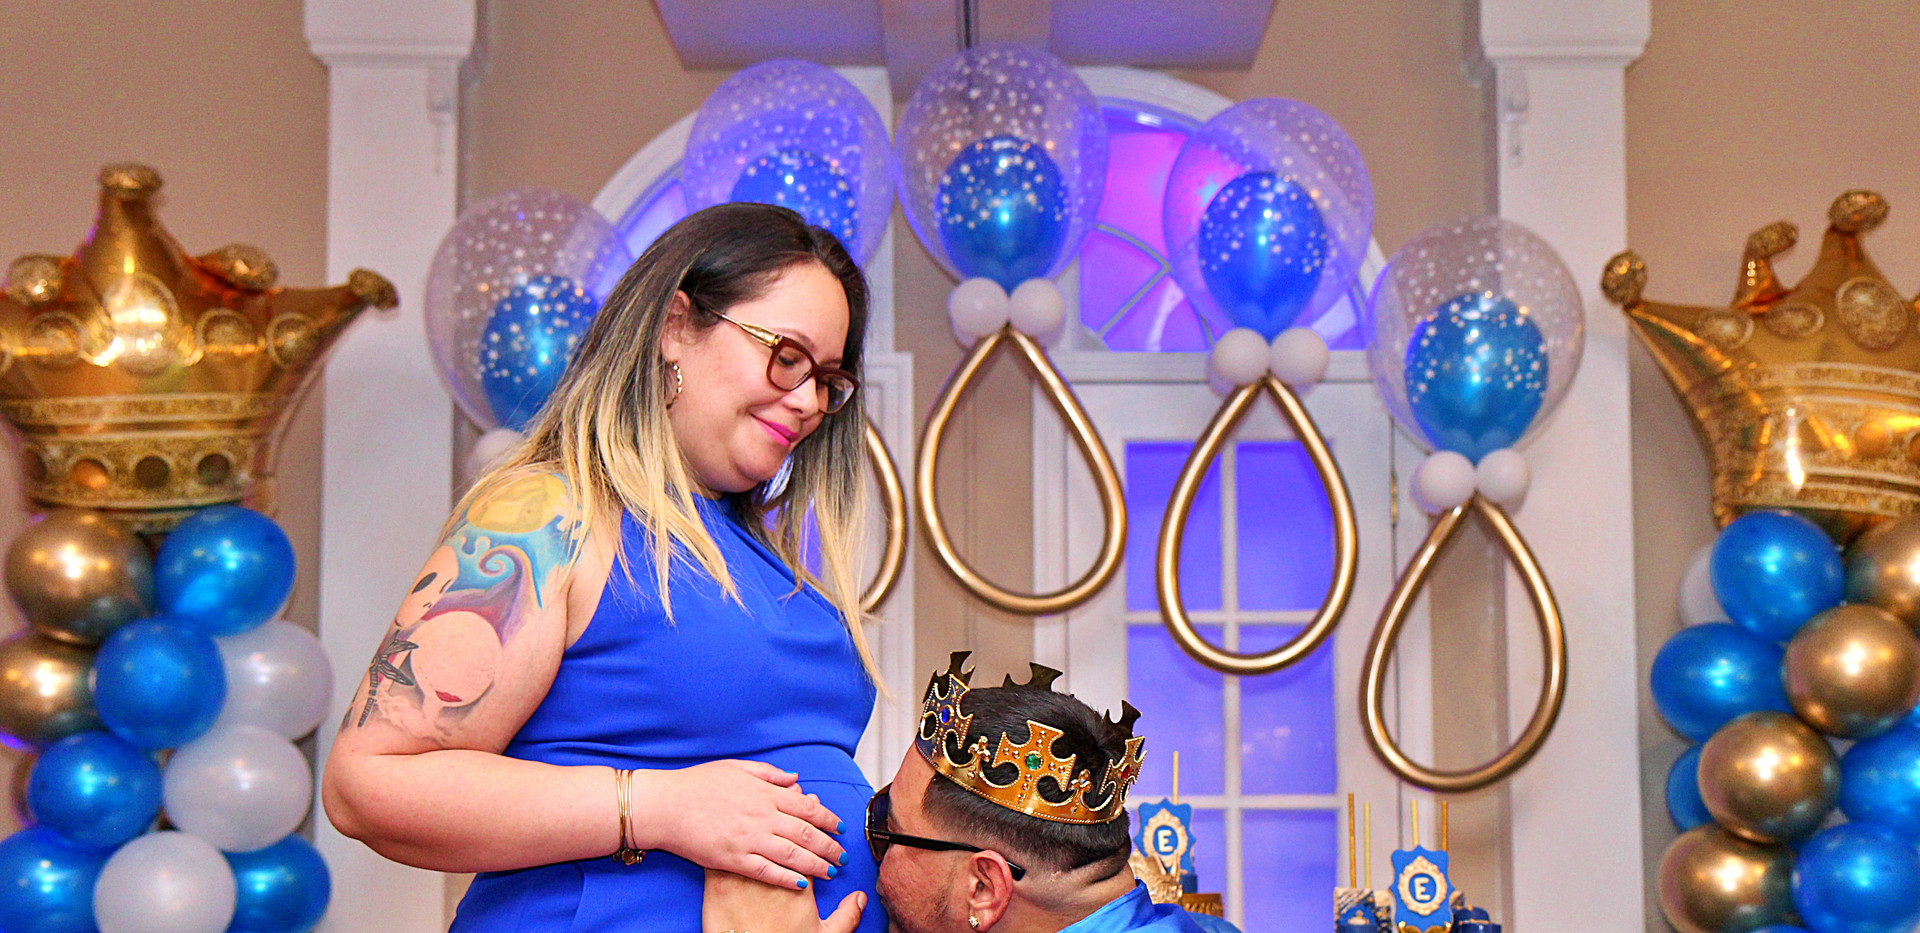 Baby Shower Celebrations.JPG